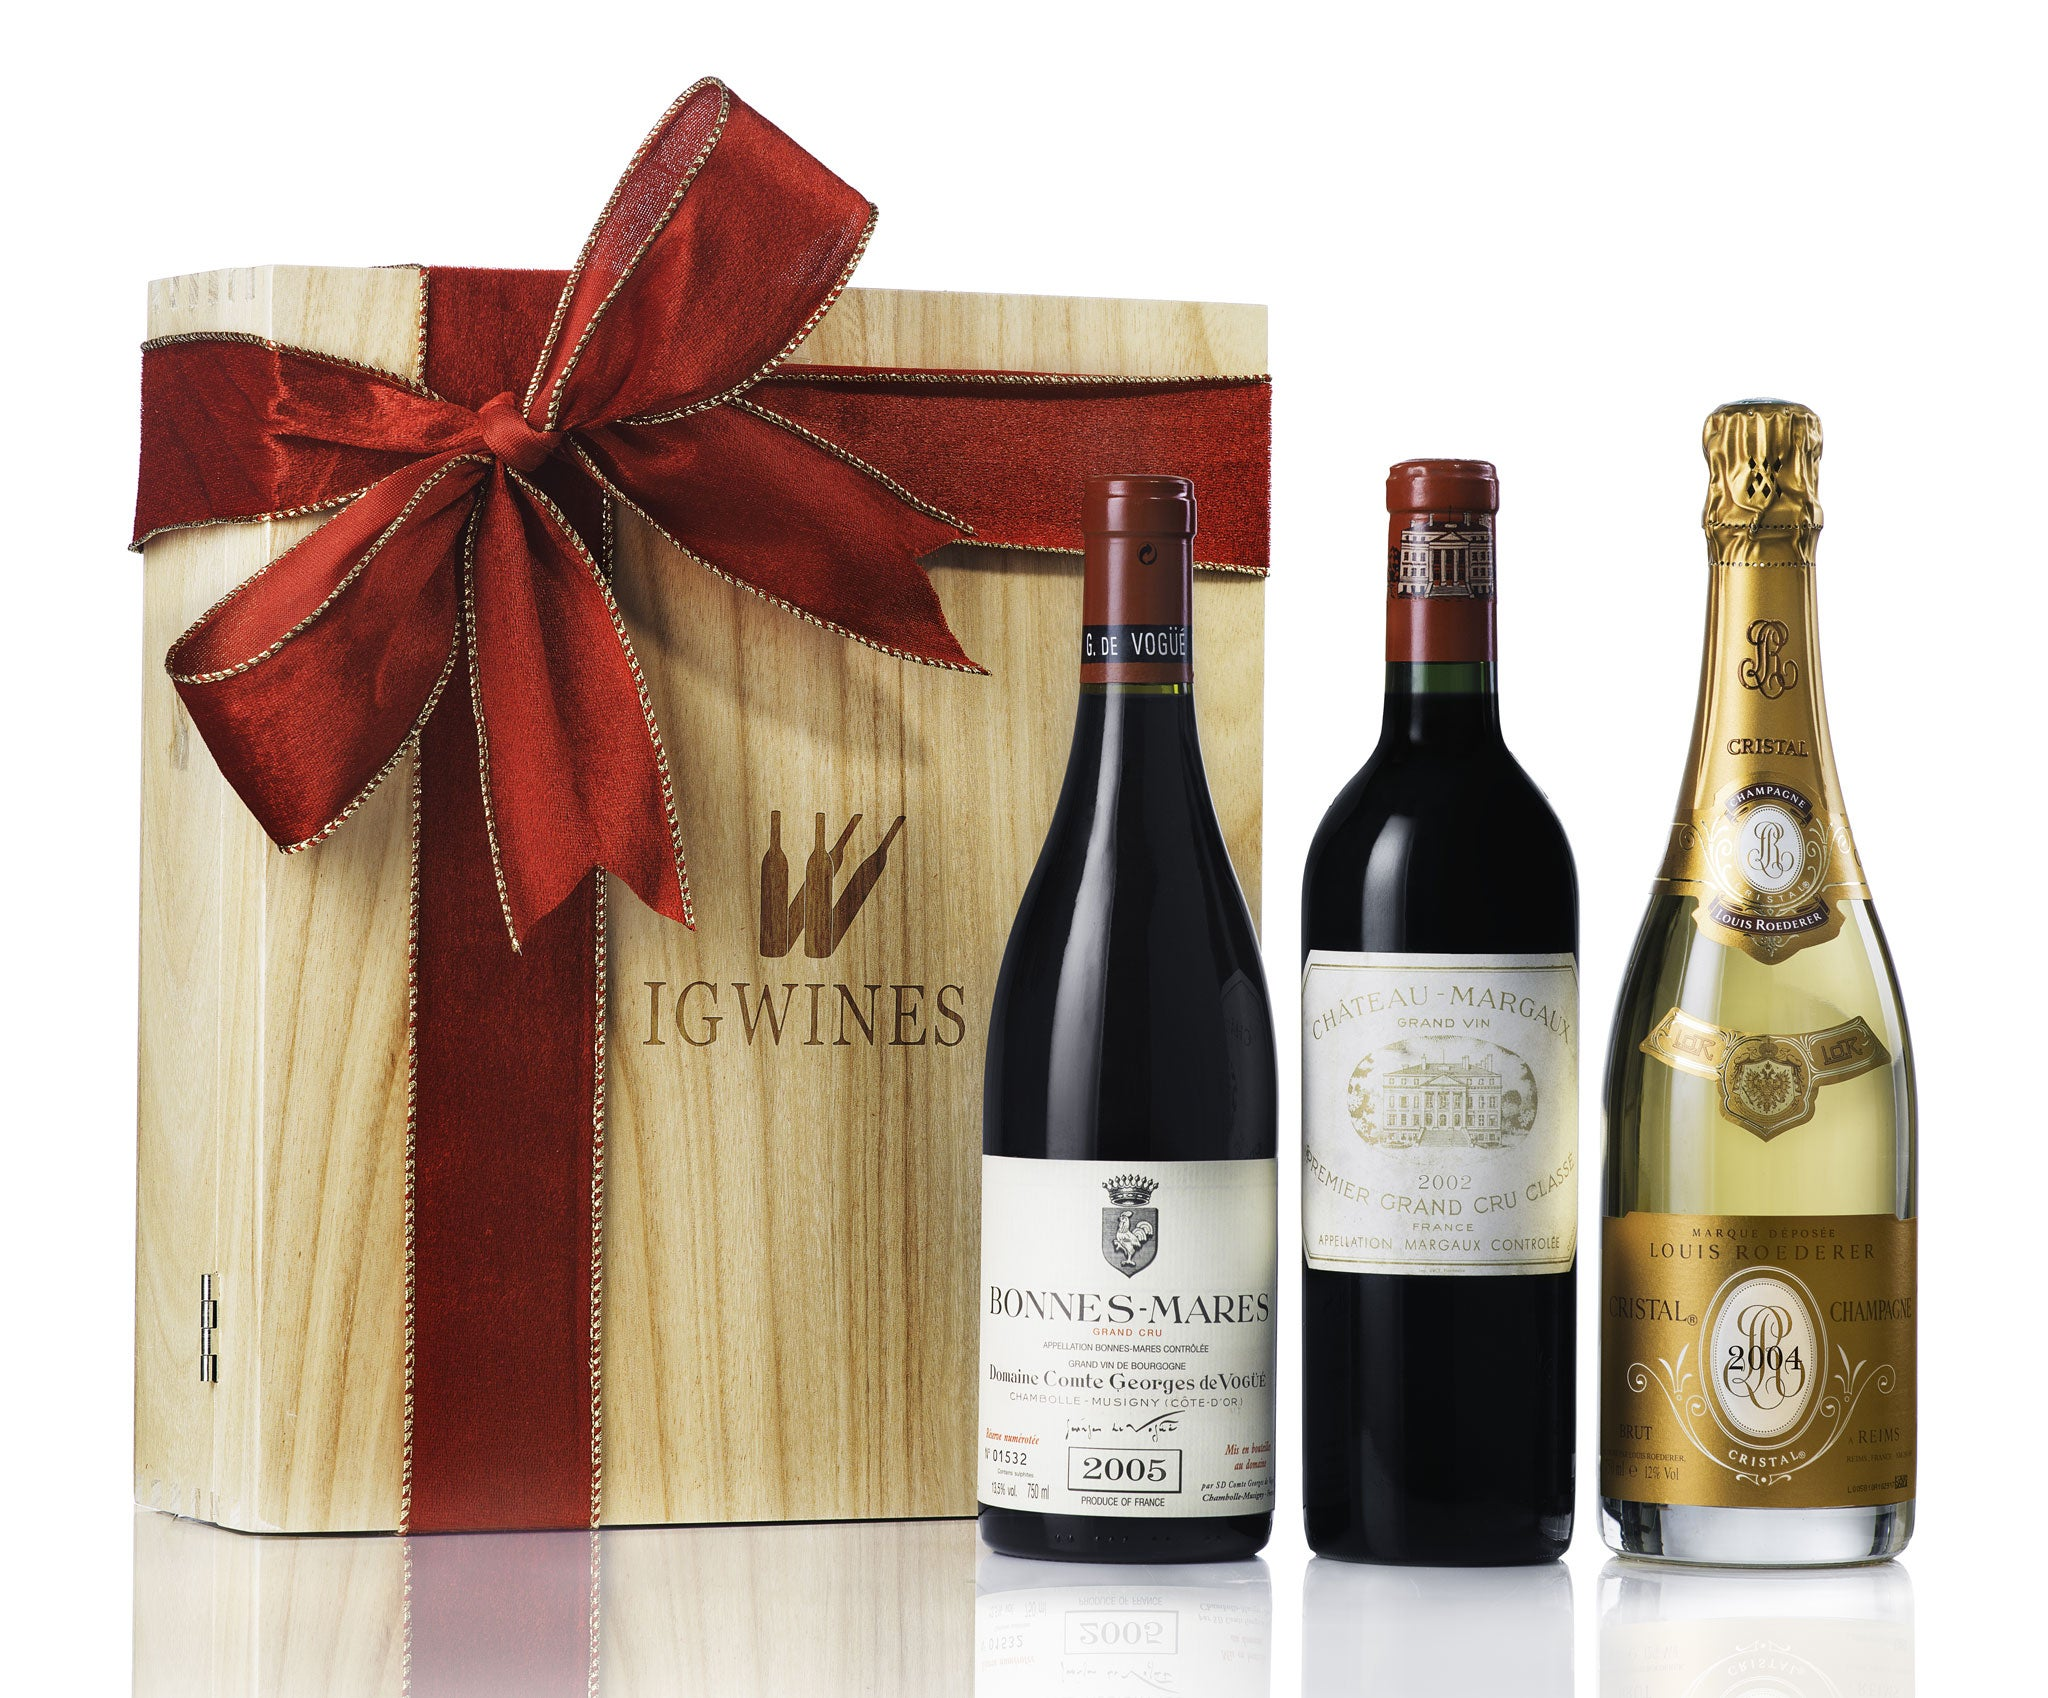 Bottoms up: 10 best alcoholic gifts for Christmas 2013 | The Independent